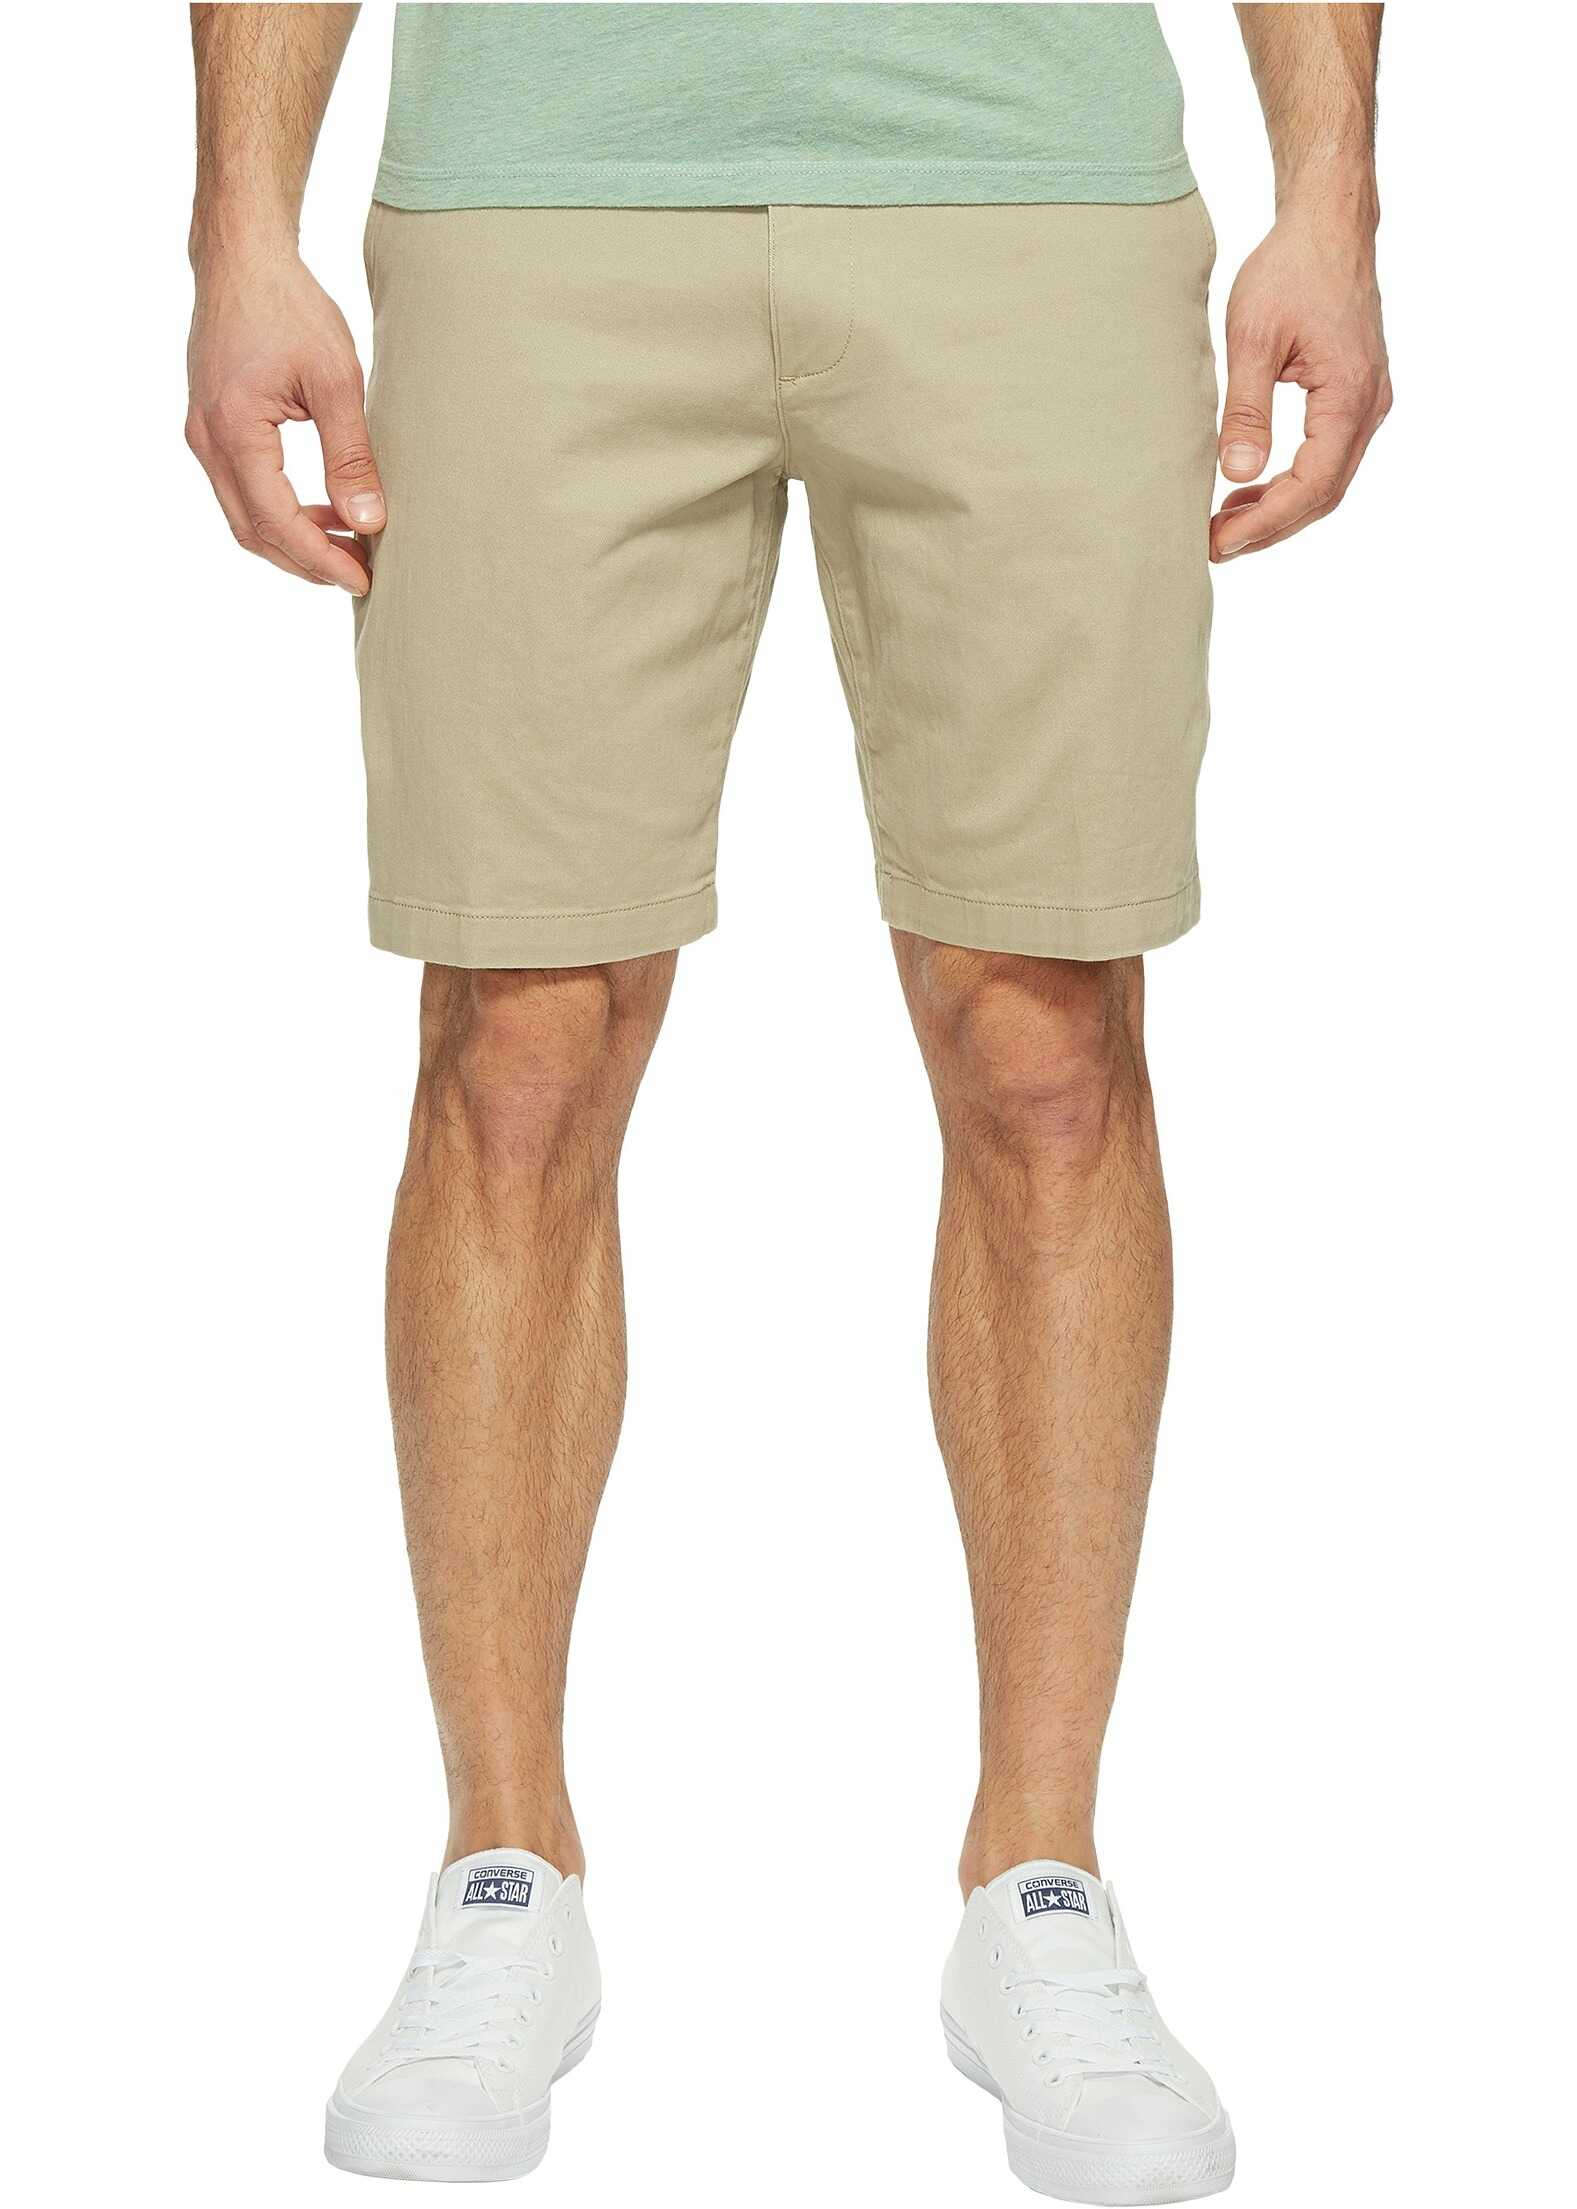 Dockers Perfect Short Classic Fit Flat Front Sand Dune Stretch